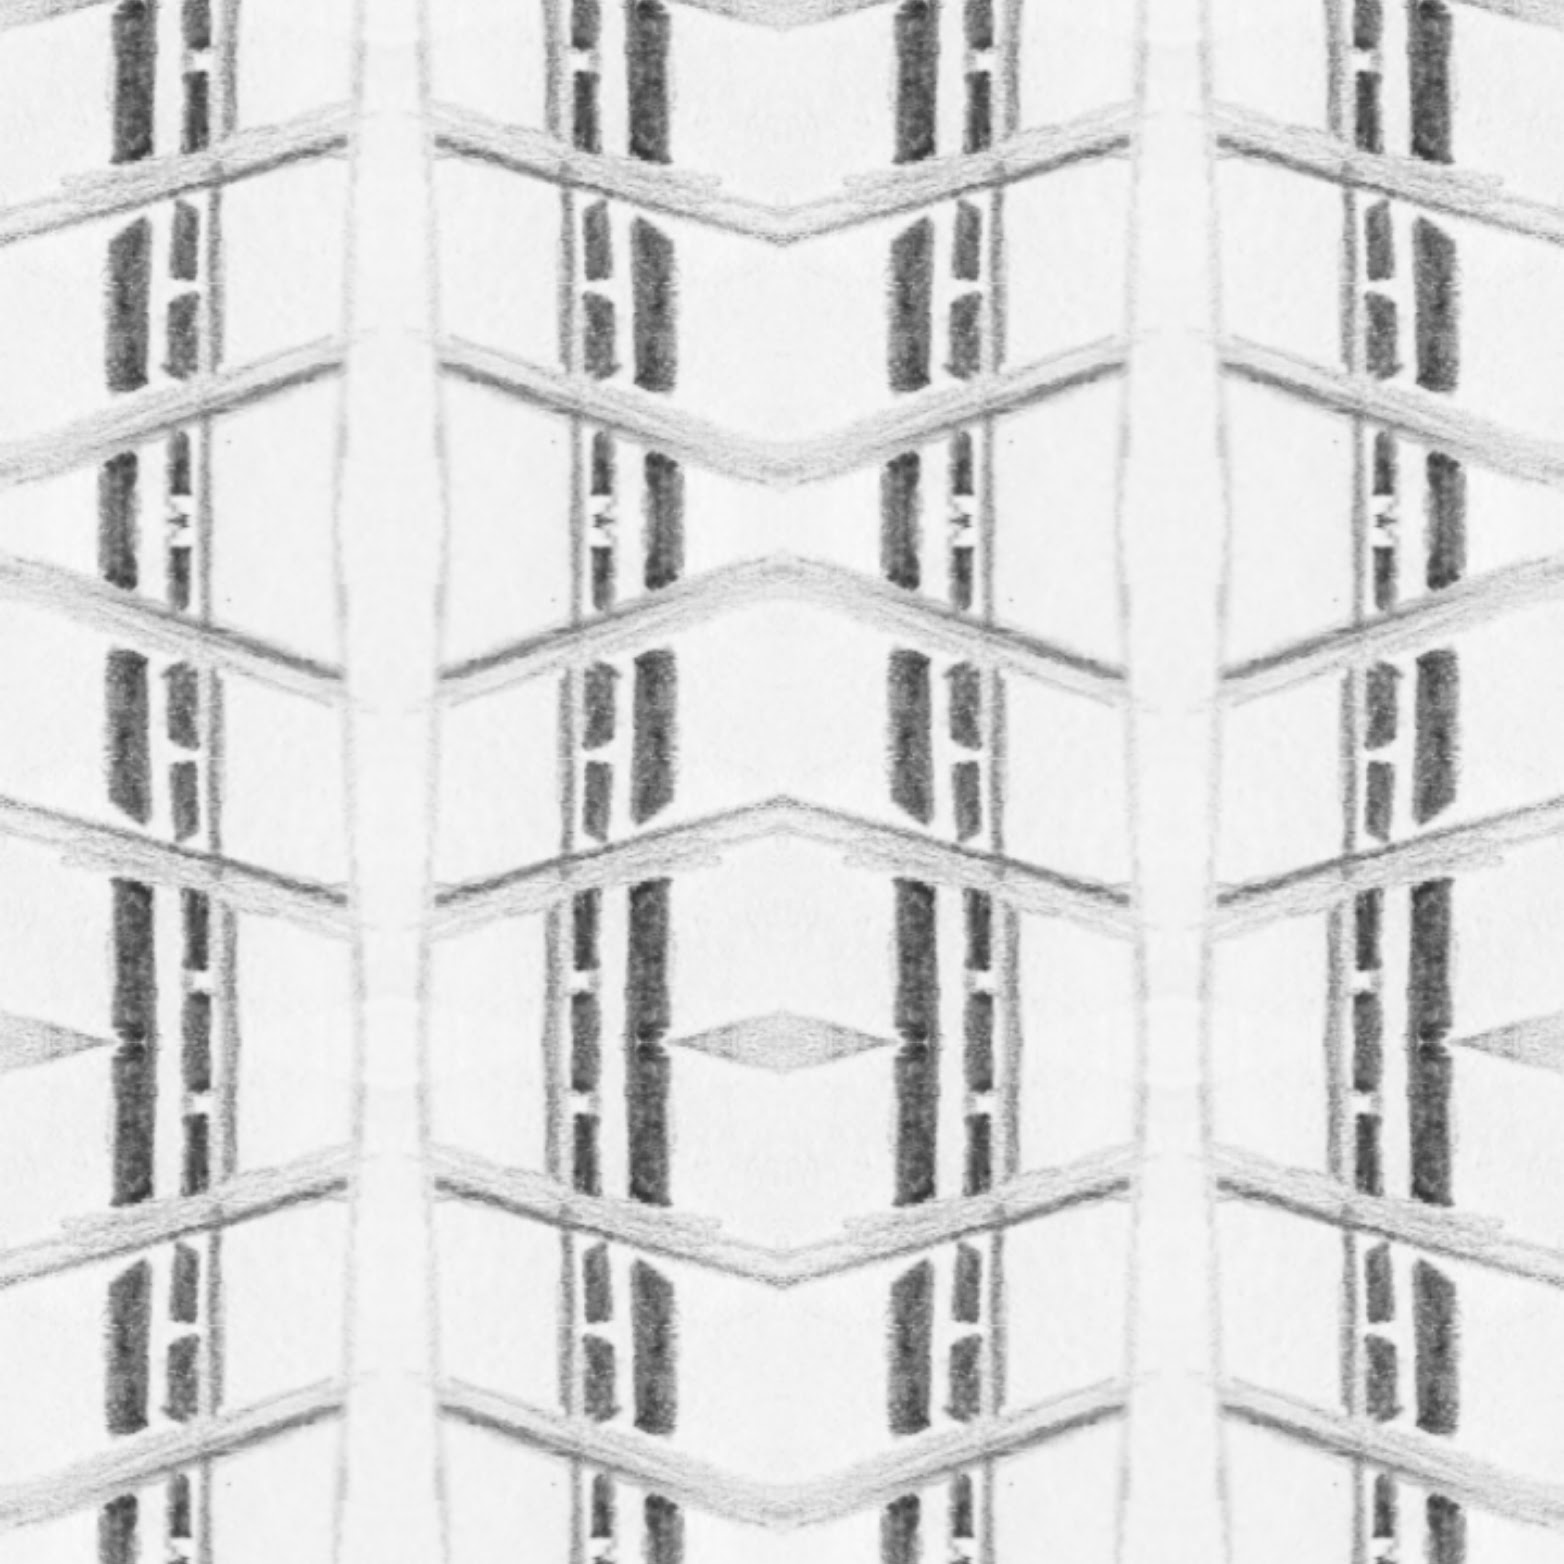 architectural pattern drawing 8 pattern